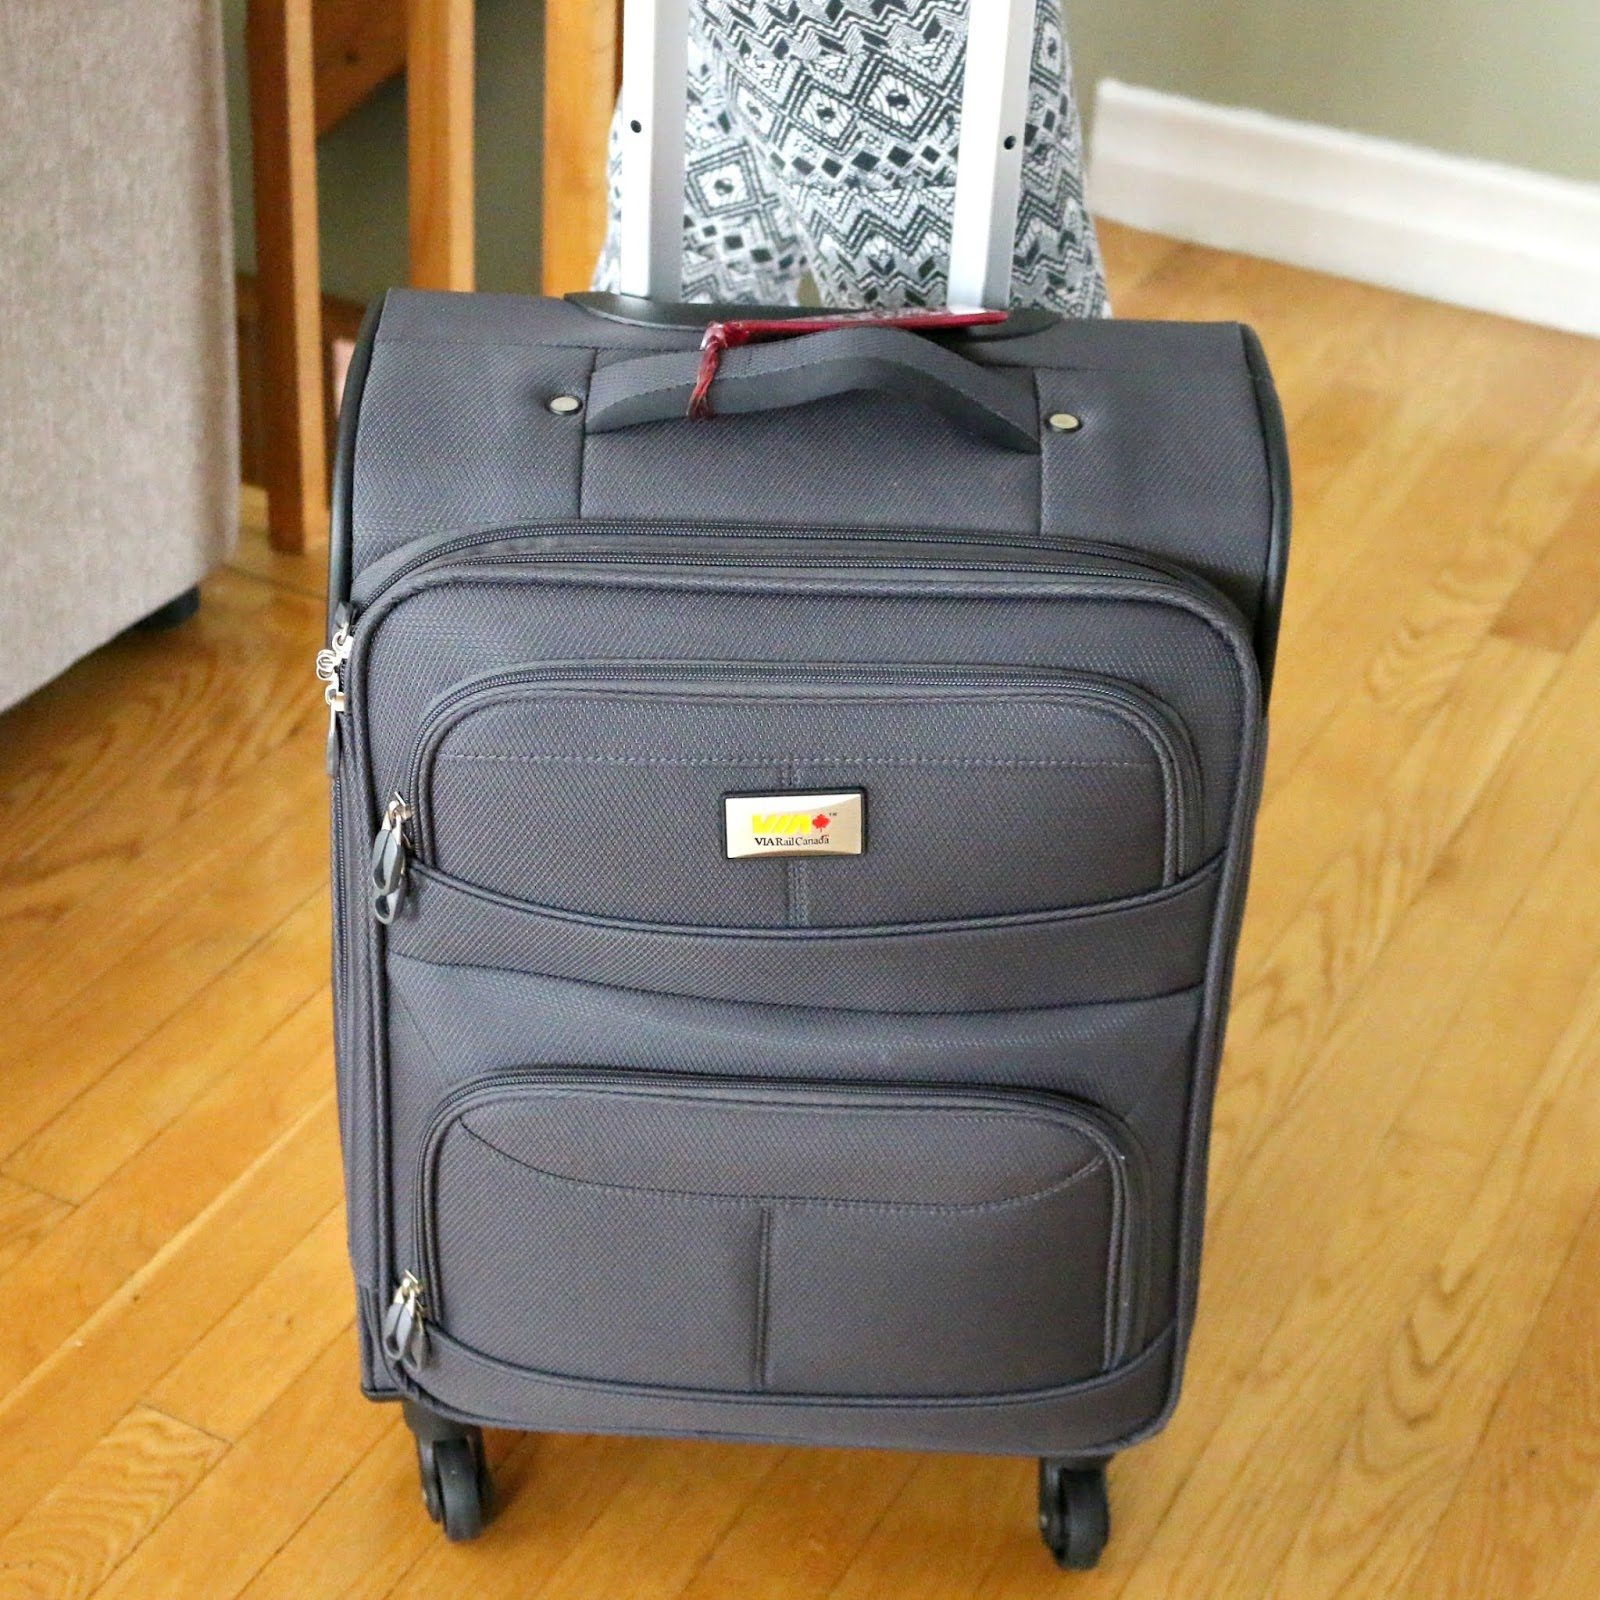 Via Rail Canada James Bay 20-inch 4-Wheel Carry-on Spinner Luggage